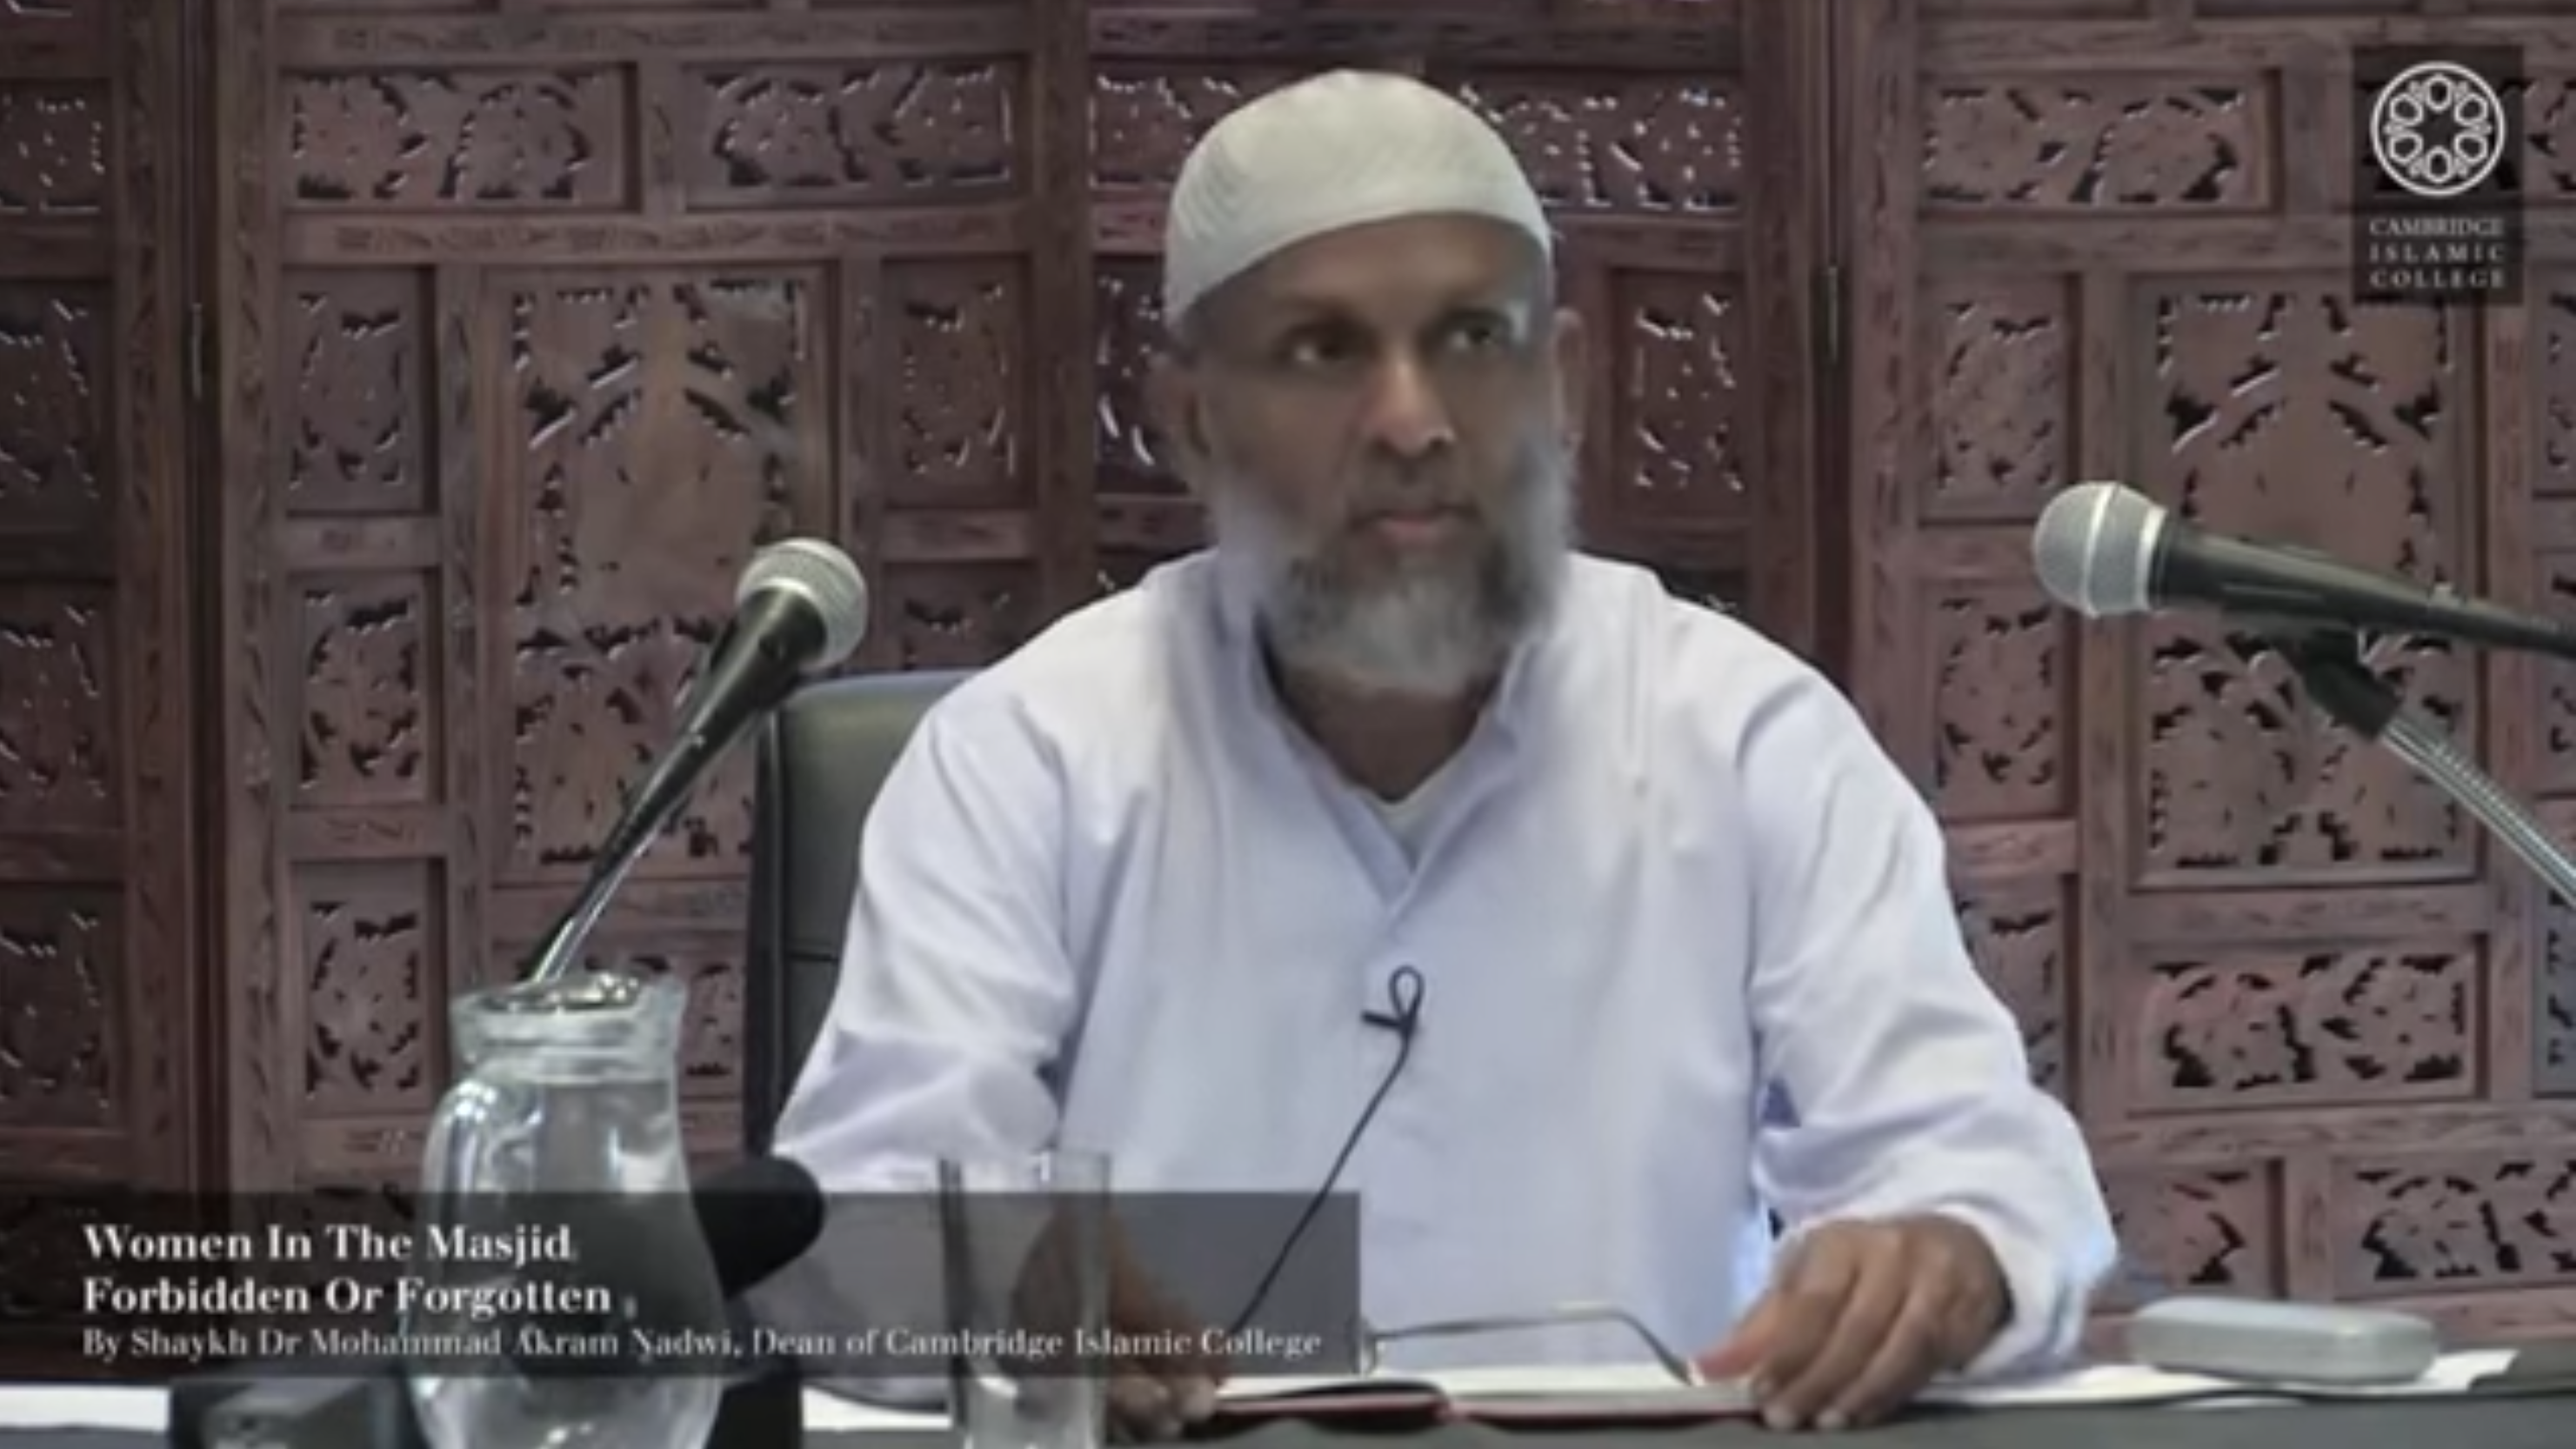 Mohammad Akram Nadwi – Women in the Masjid: Forbidden or Forgotten